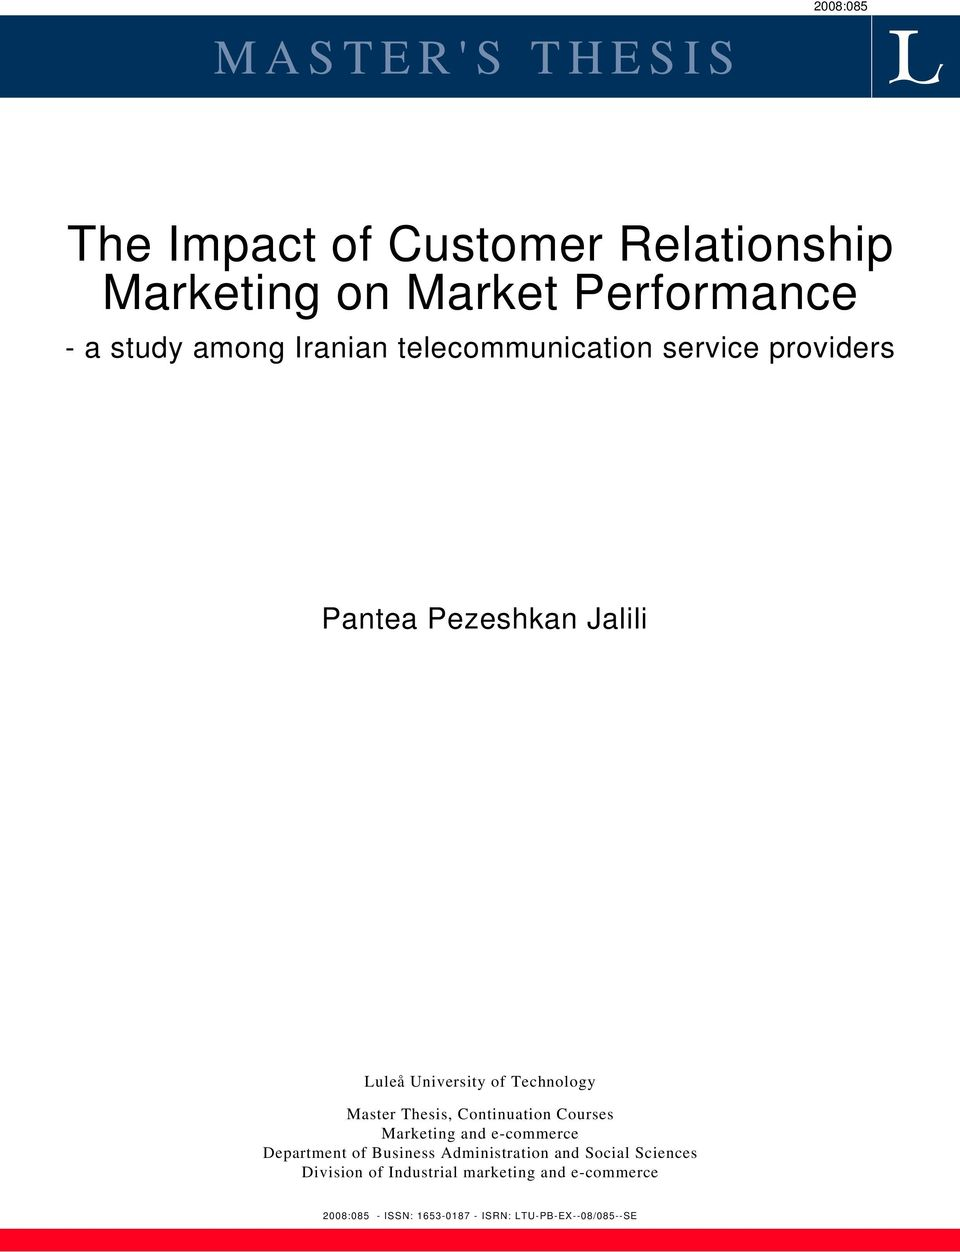 Dissertation Report On Direct Marketing